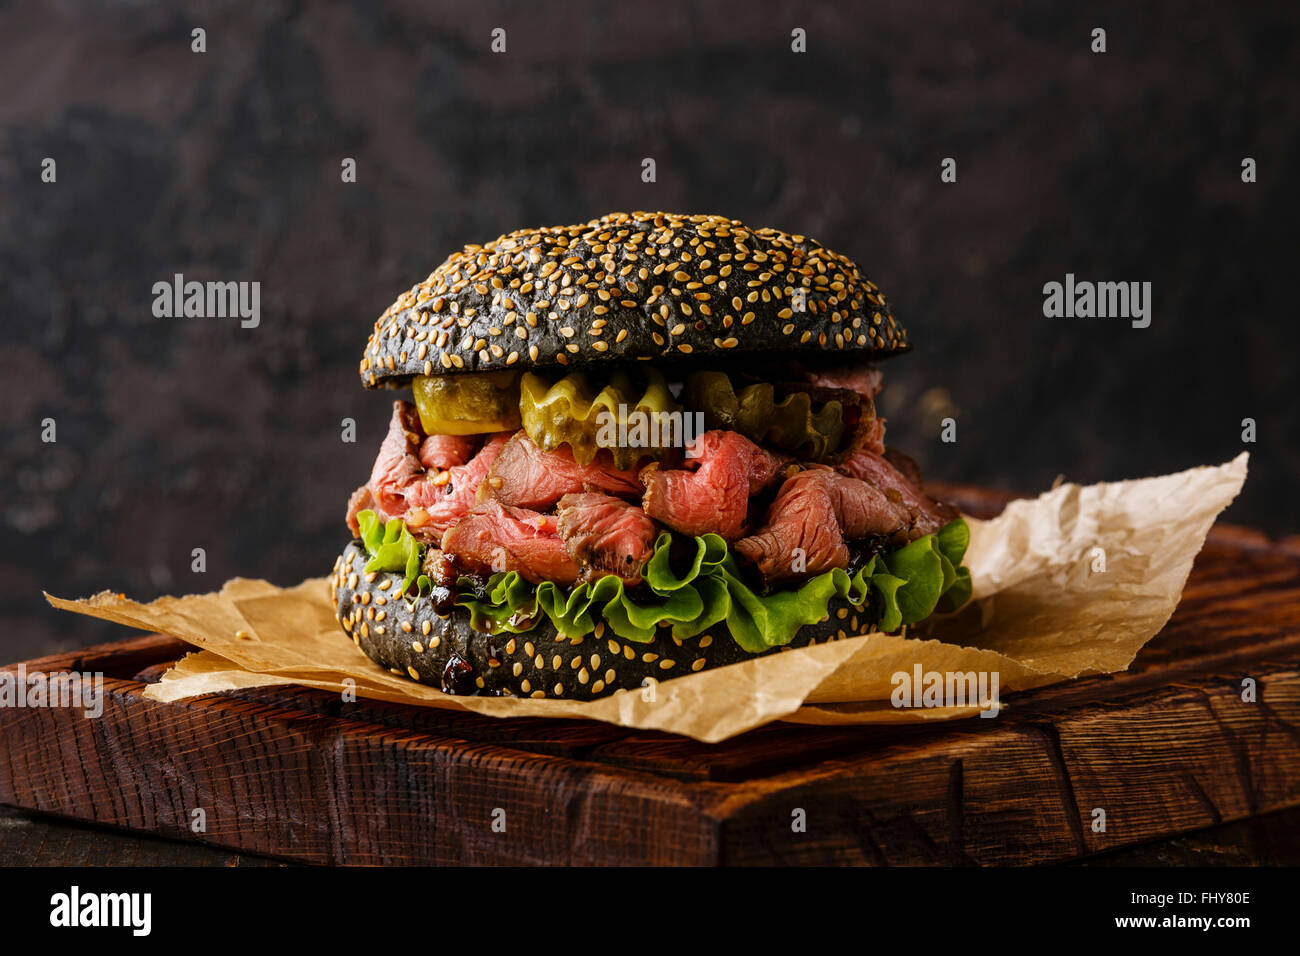 Roast beef Burger Takeaway snack on sesame bun with sliced Pastrami and pickle on black background - Stock Image